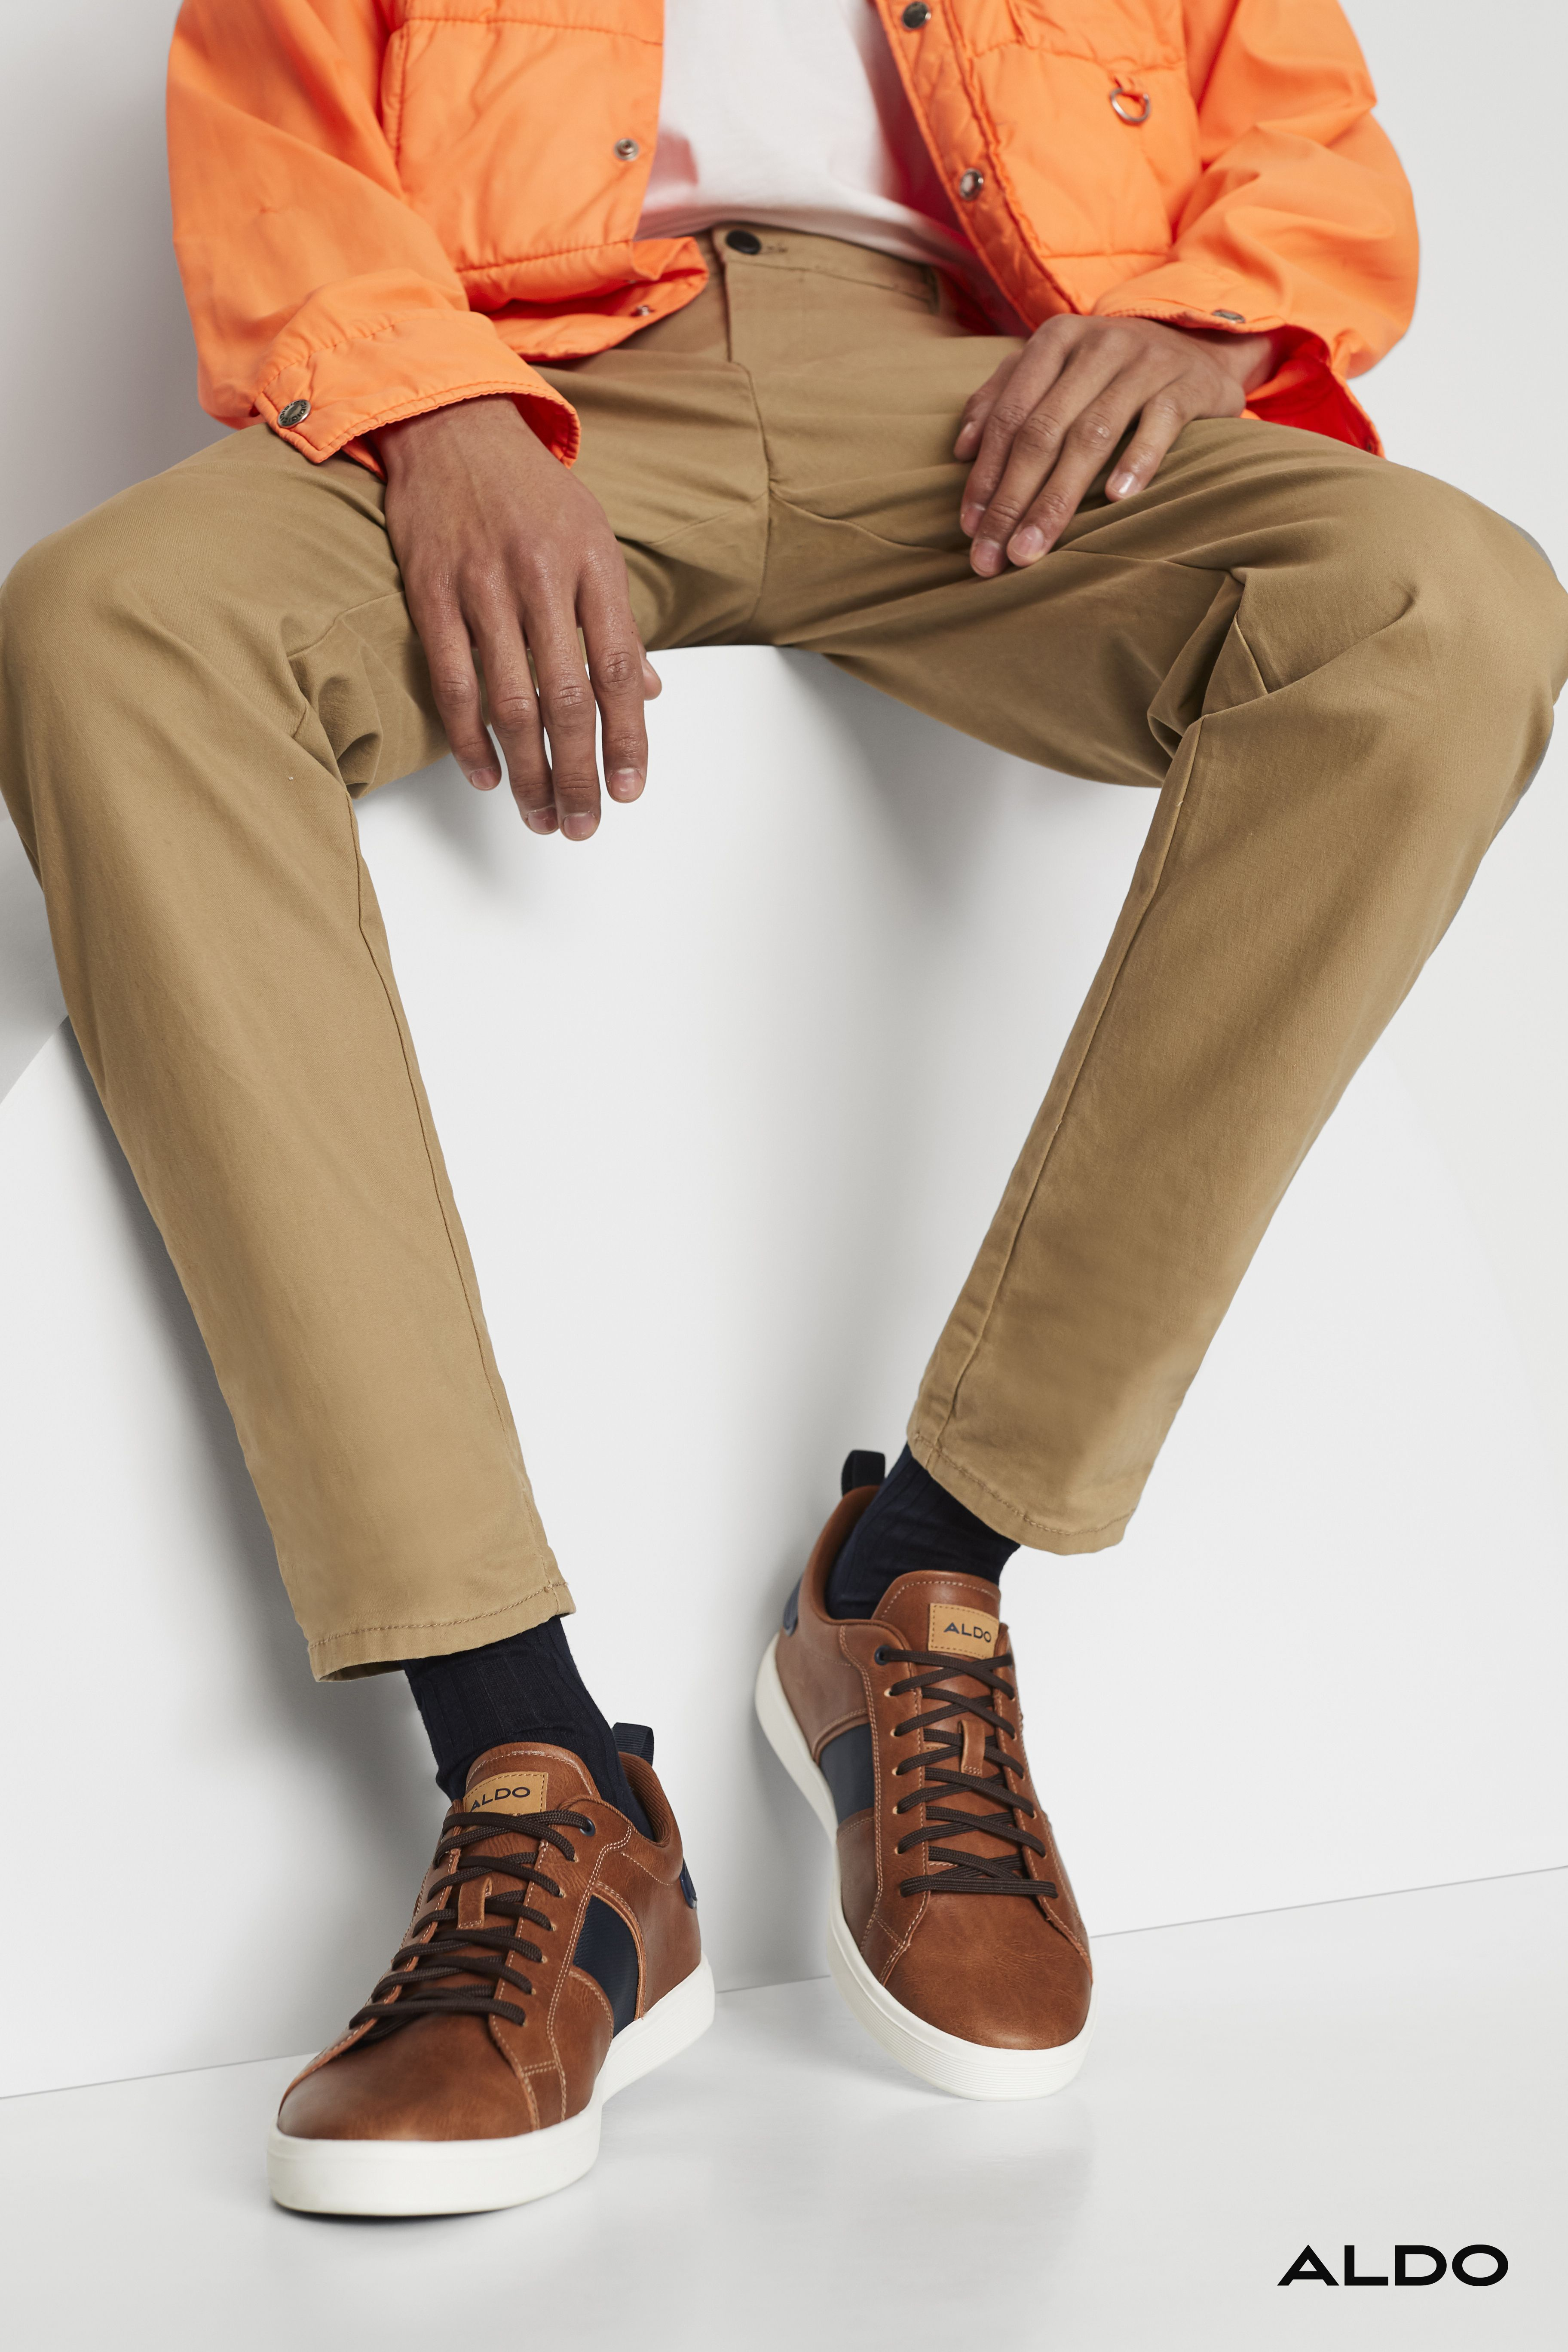 Mens fashion, Sneakers men, Ripped jeans